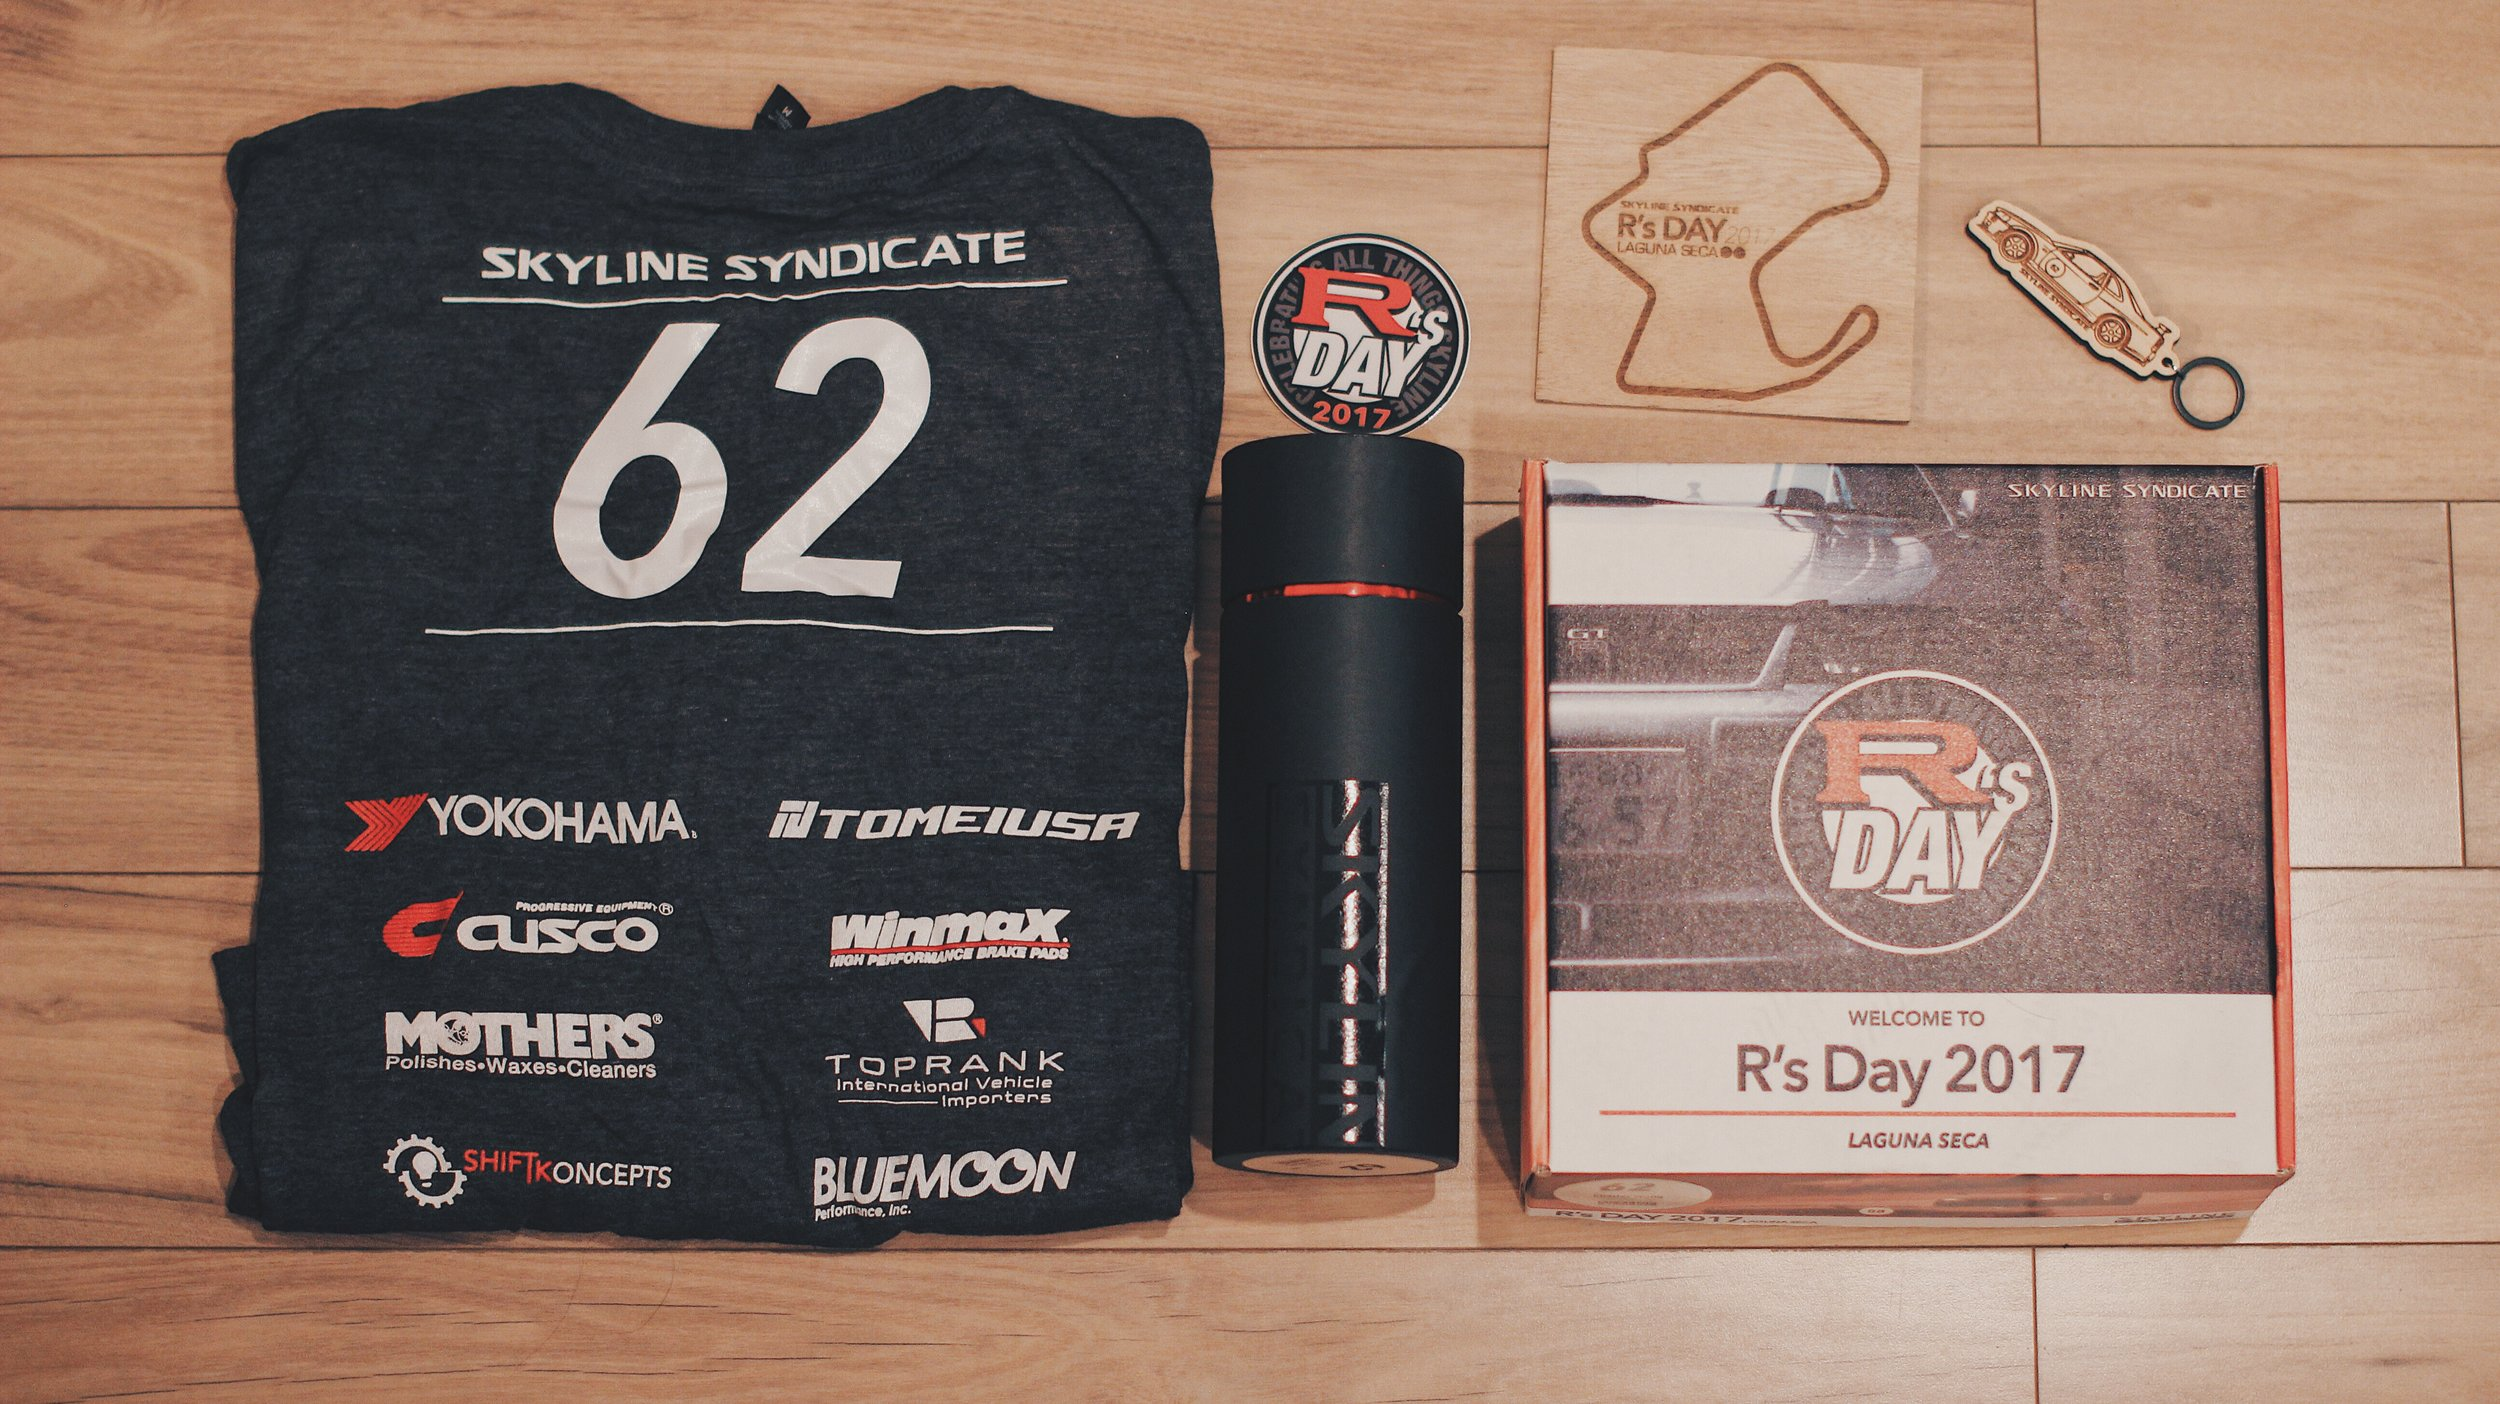 And here is my premium package from Skyline Syndicated featuring a T-shirt with my track car number, a keychain and a Laguna Seca Map.